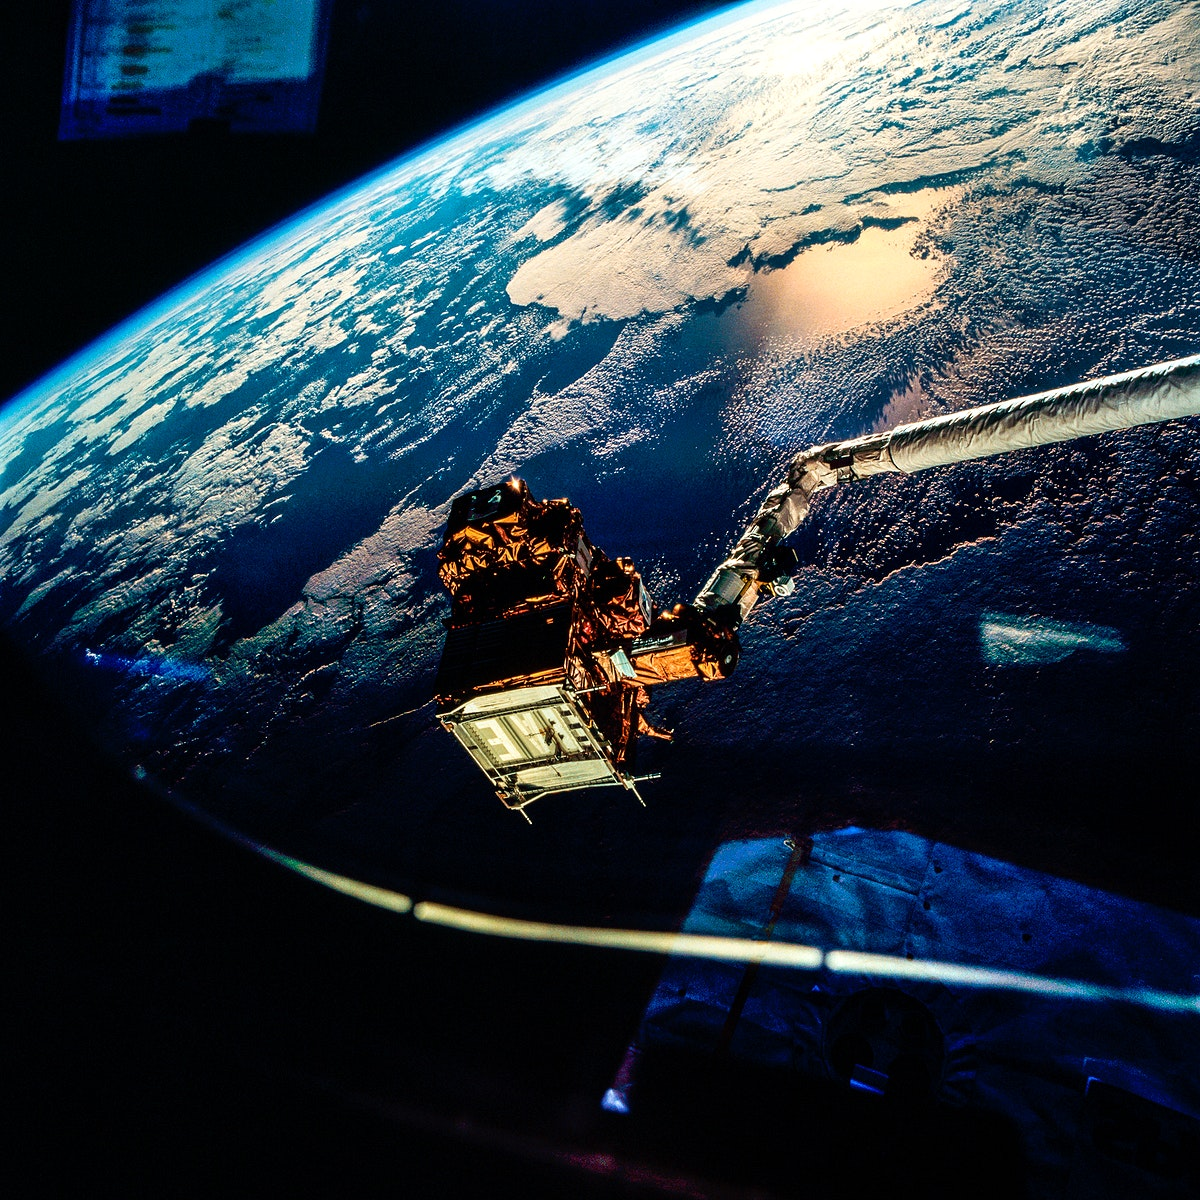 View of the SPARTAN satellite during its release into orbit. Original from NASA. Digitally enhanced by rawpixel.